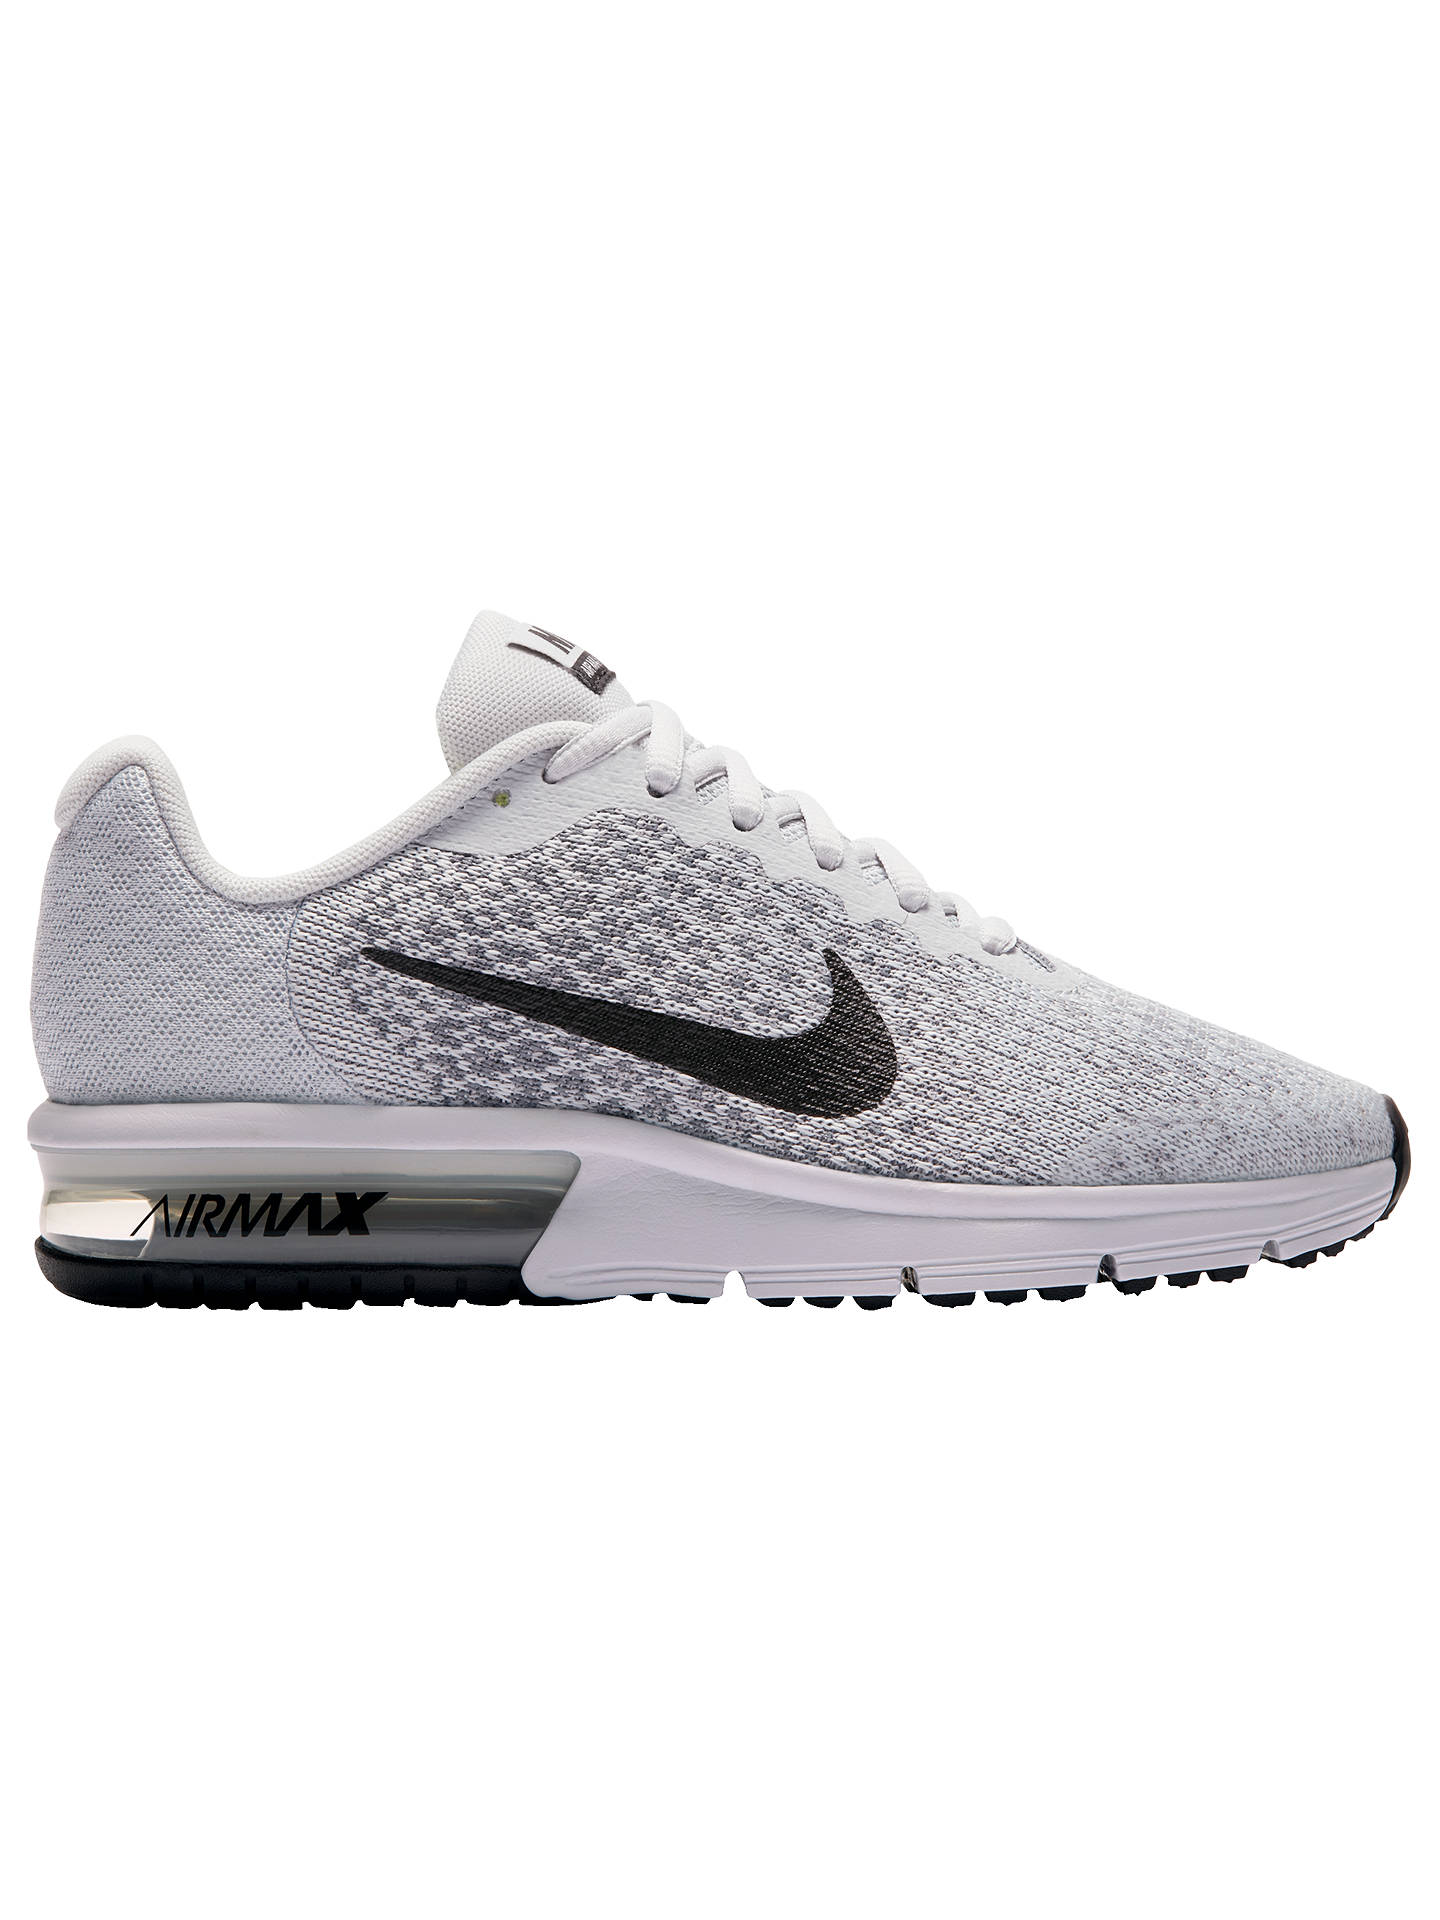 b54caee4a8a Buy Nike Children s Air Max Sequent 2 Trainers